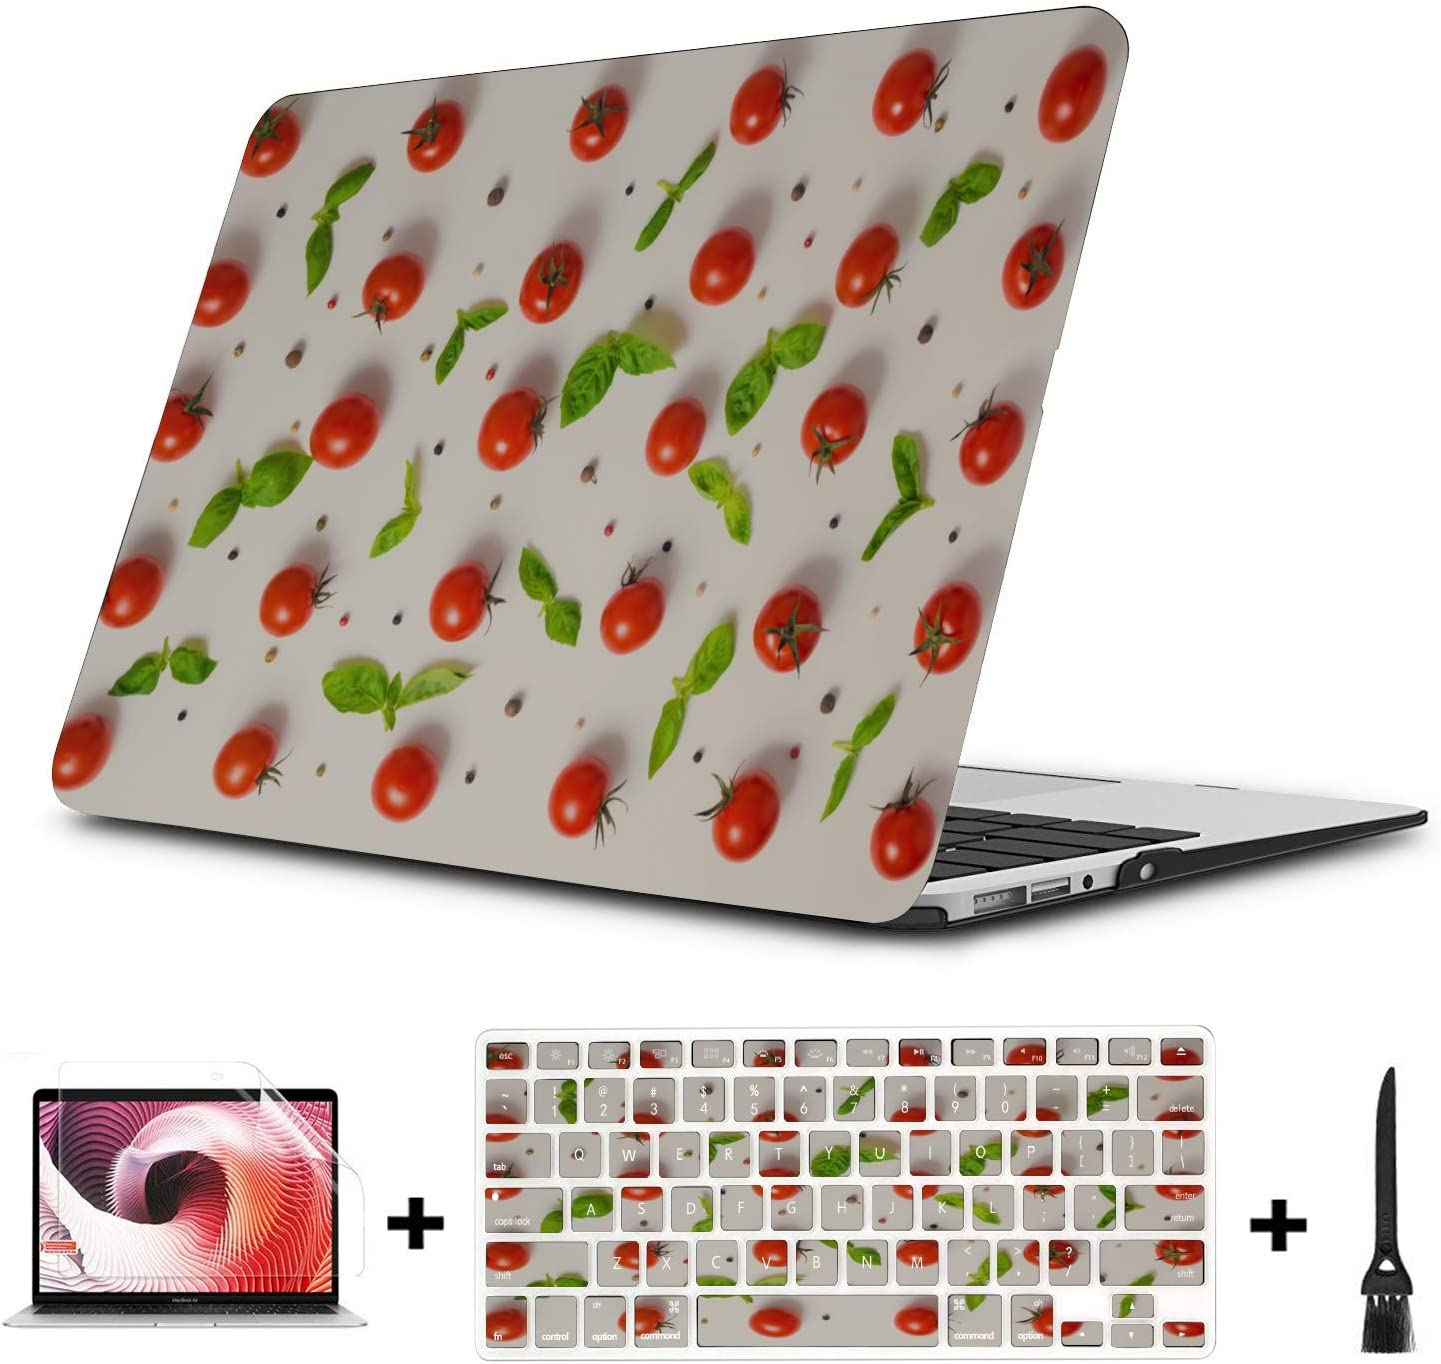 MacBook Pro Laptop Summer Small Fruit Vegetable Tomato Plastic Hard Shell Compatible Mac Air 11 Pro 13 15 MacBook Pro Case 2018 Protection for MacBook 2016-2019 Version